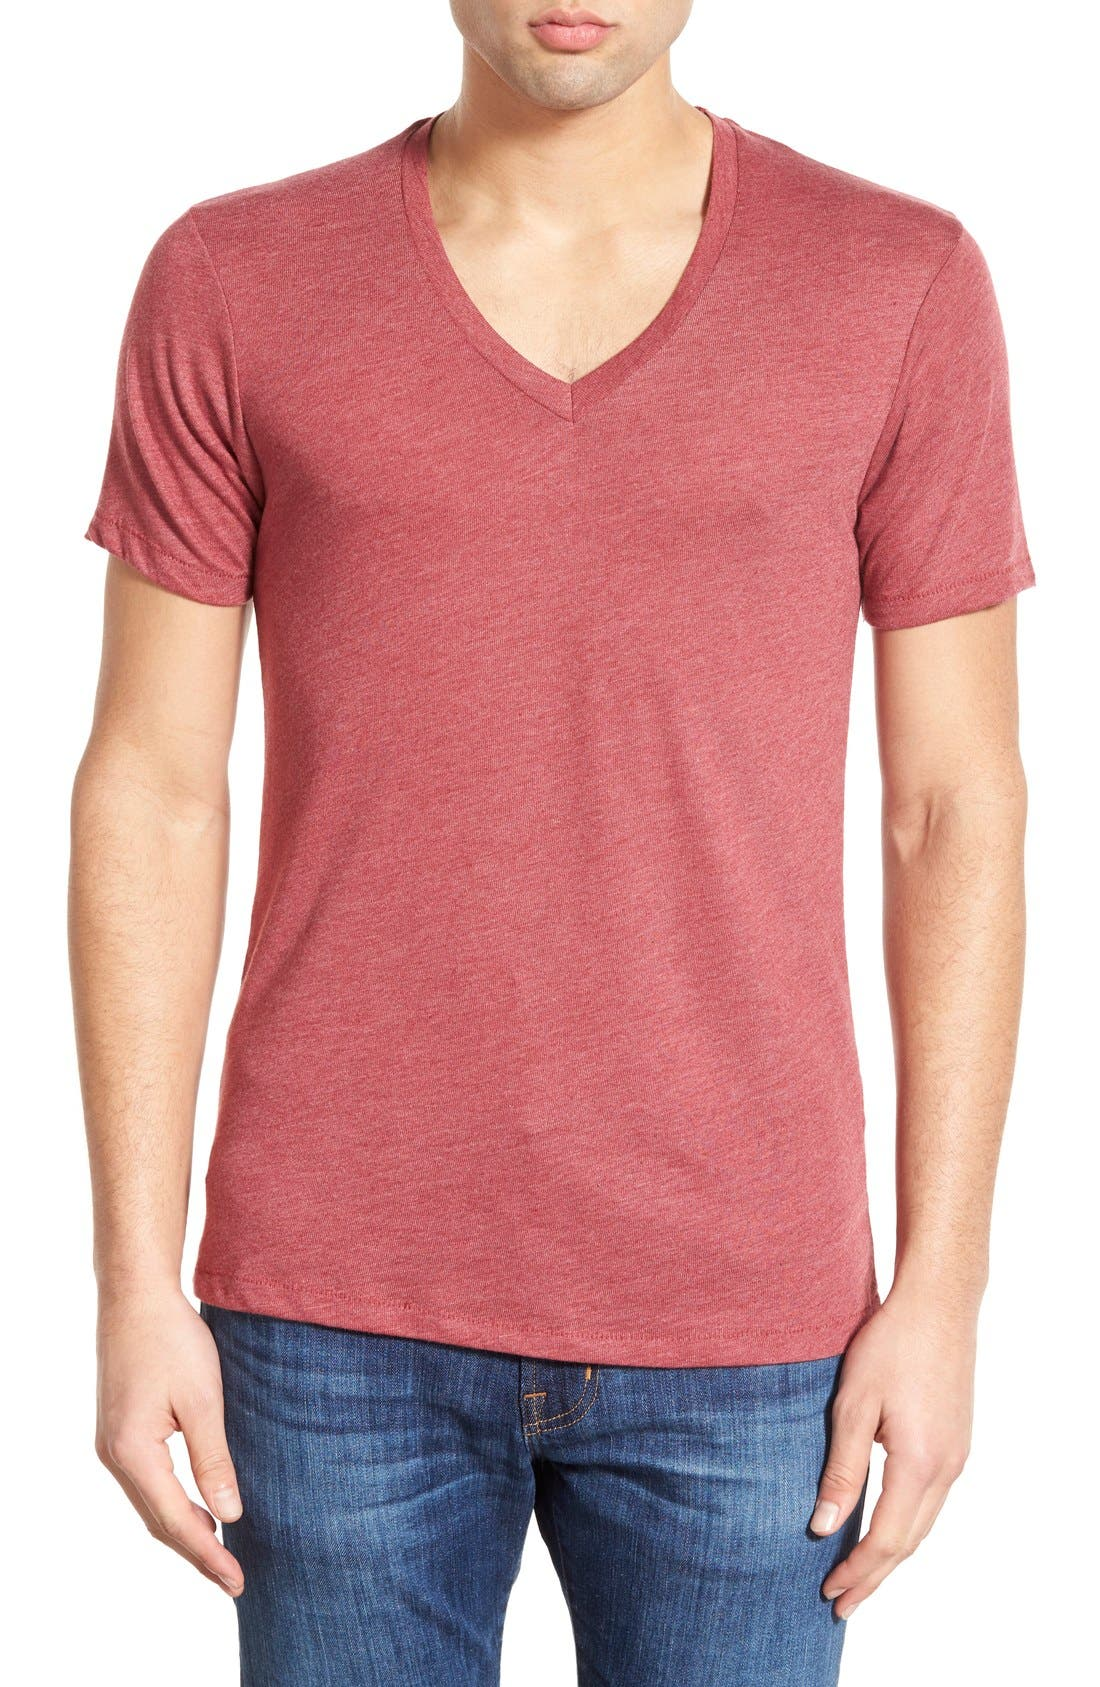 Alternate Image 1 Selected - Alternative Heathered Trim Fit V-Neck T-Shirt